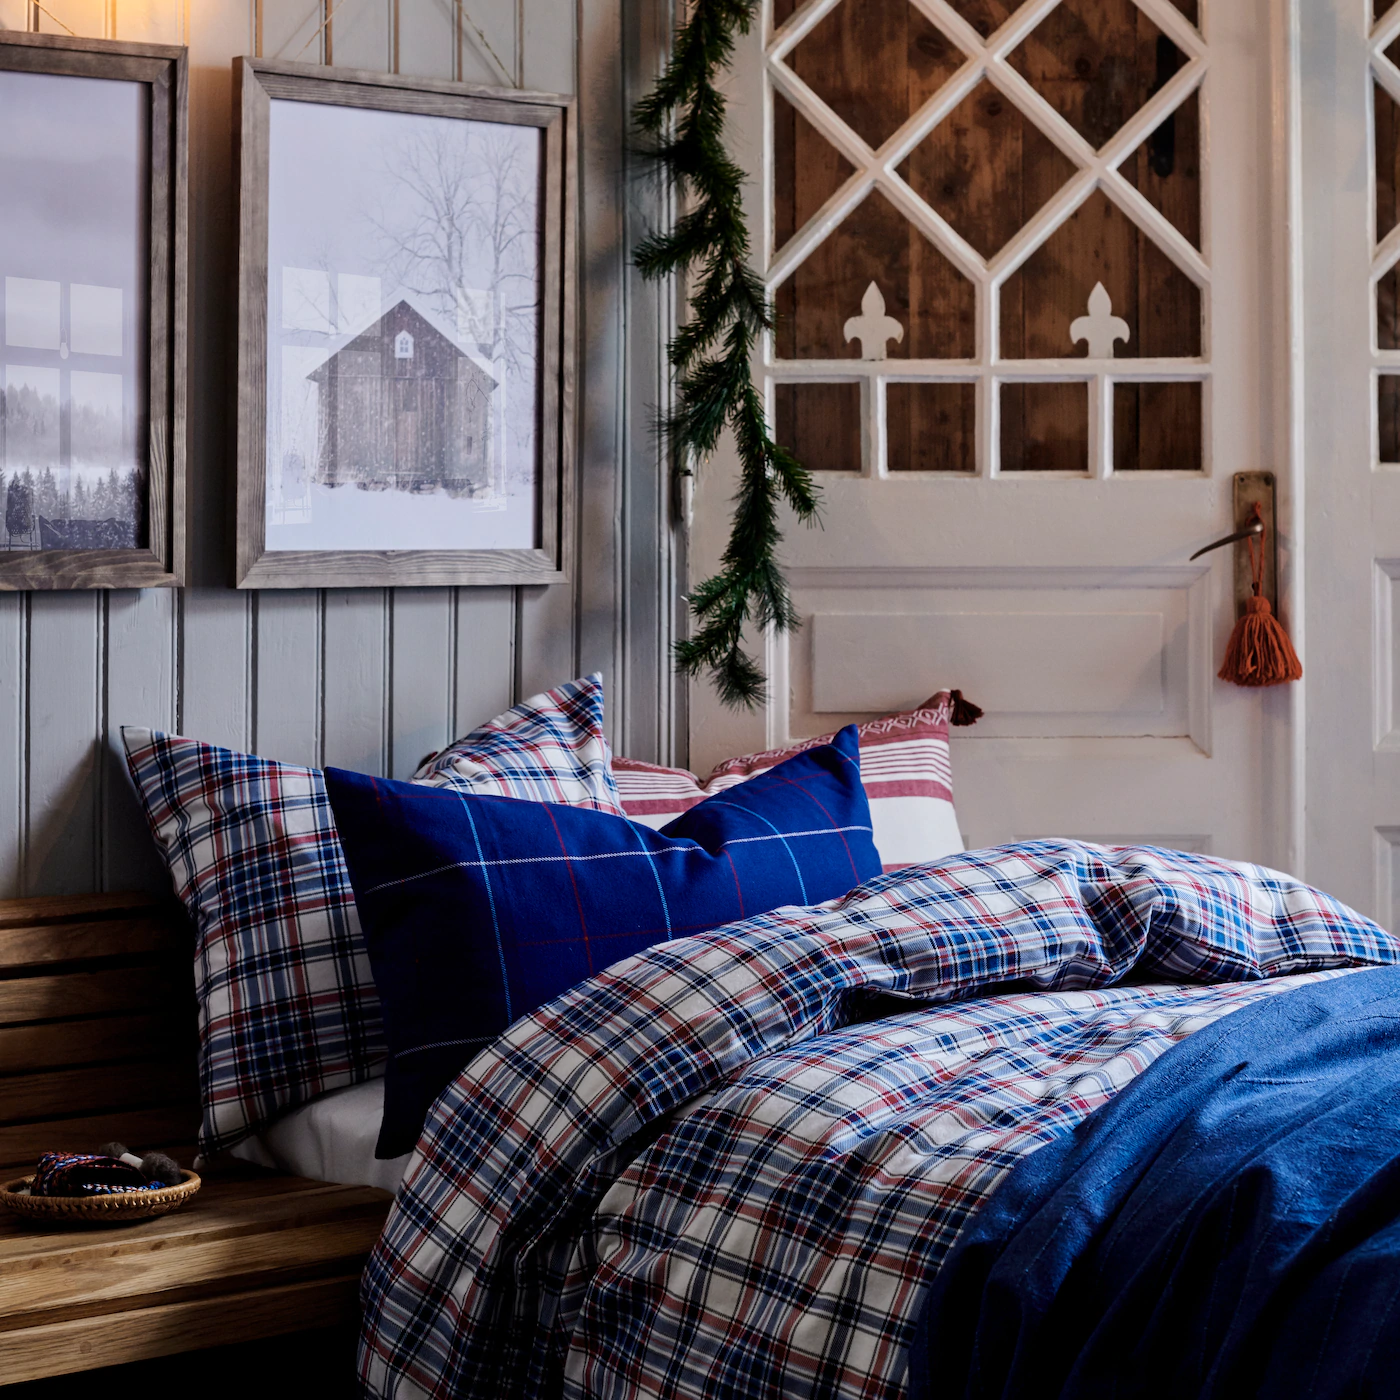 Cozy Christmas Home Decor Inspiration From Ikea The Nordroom